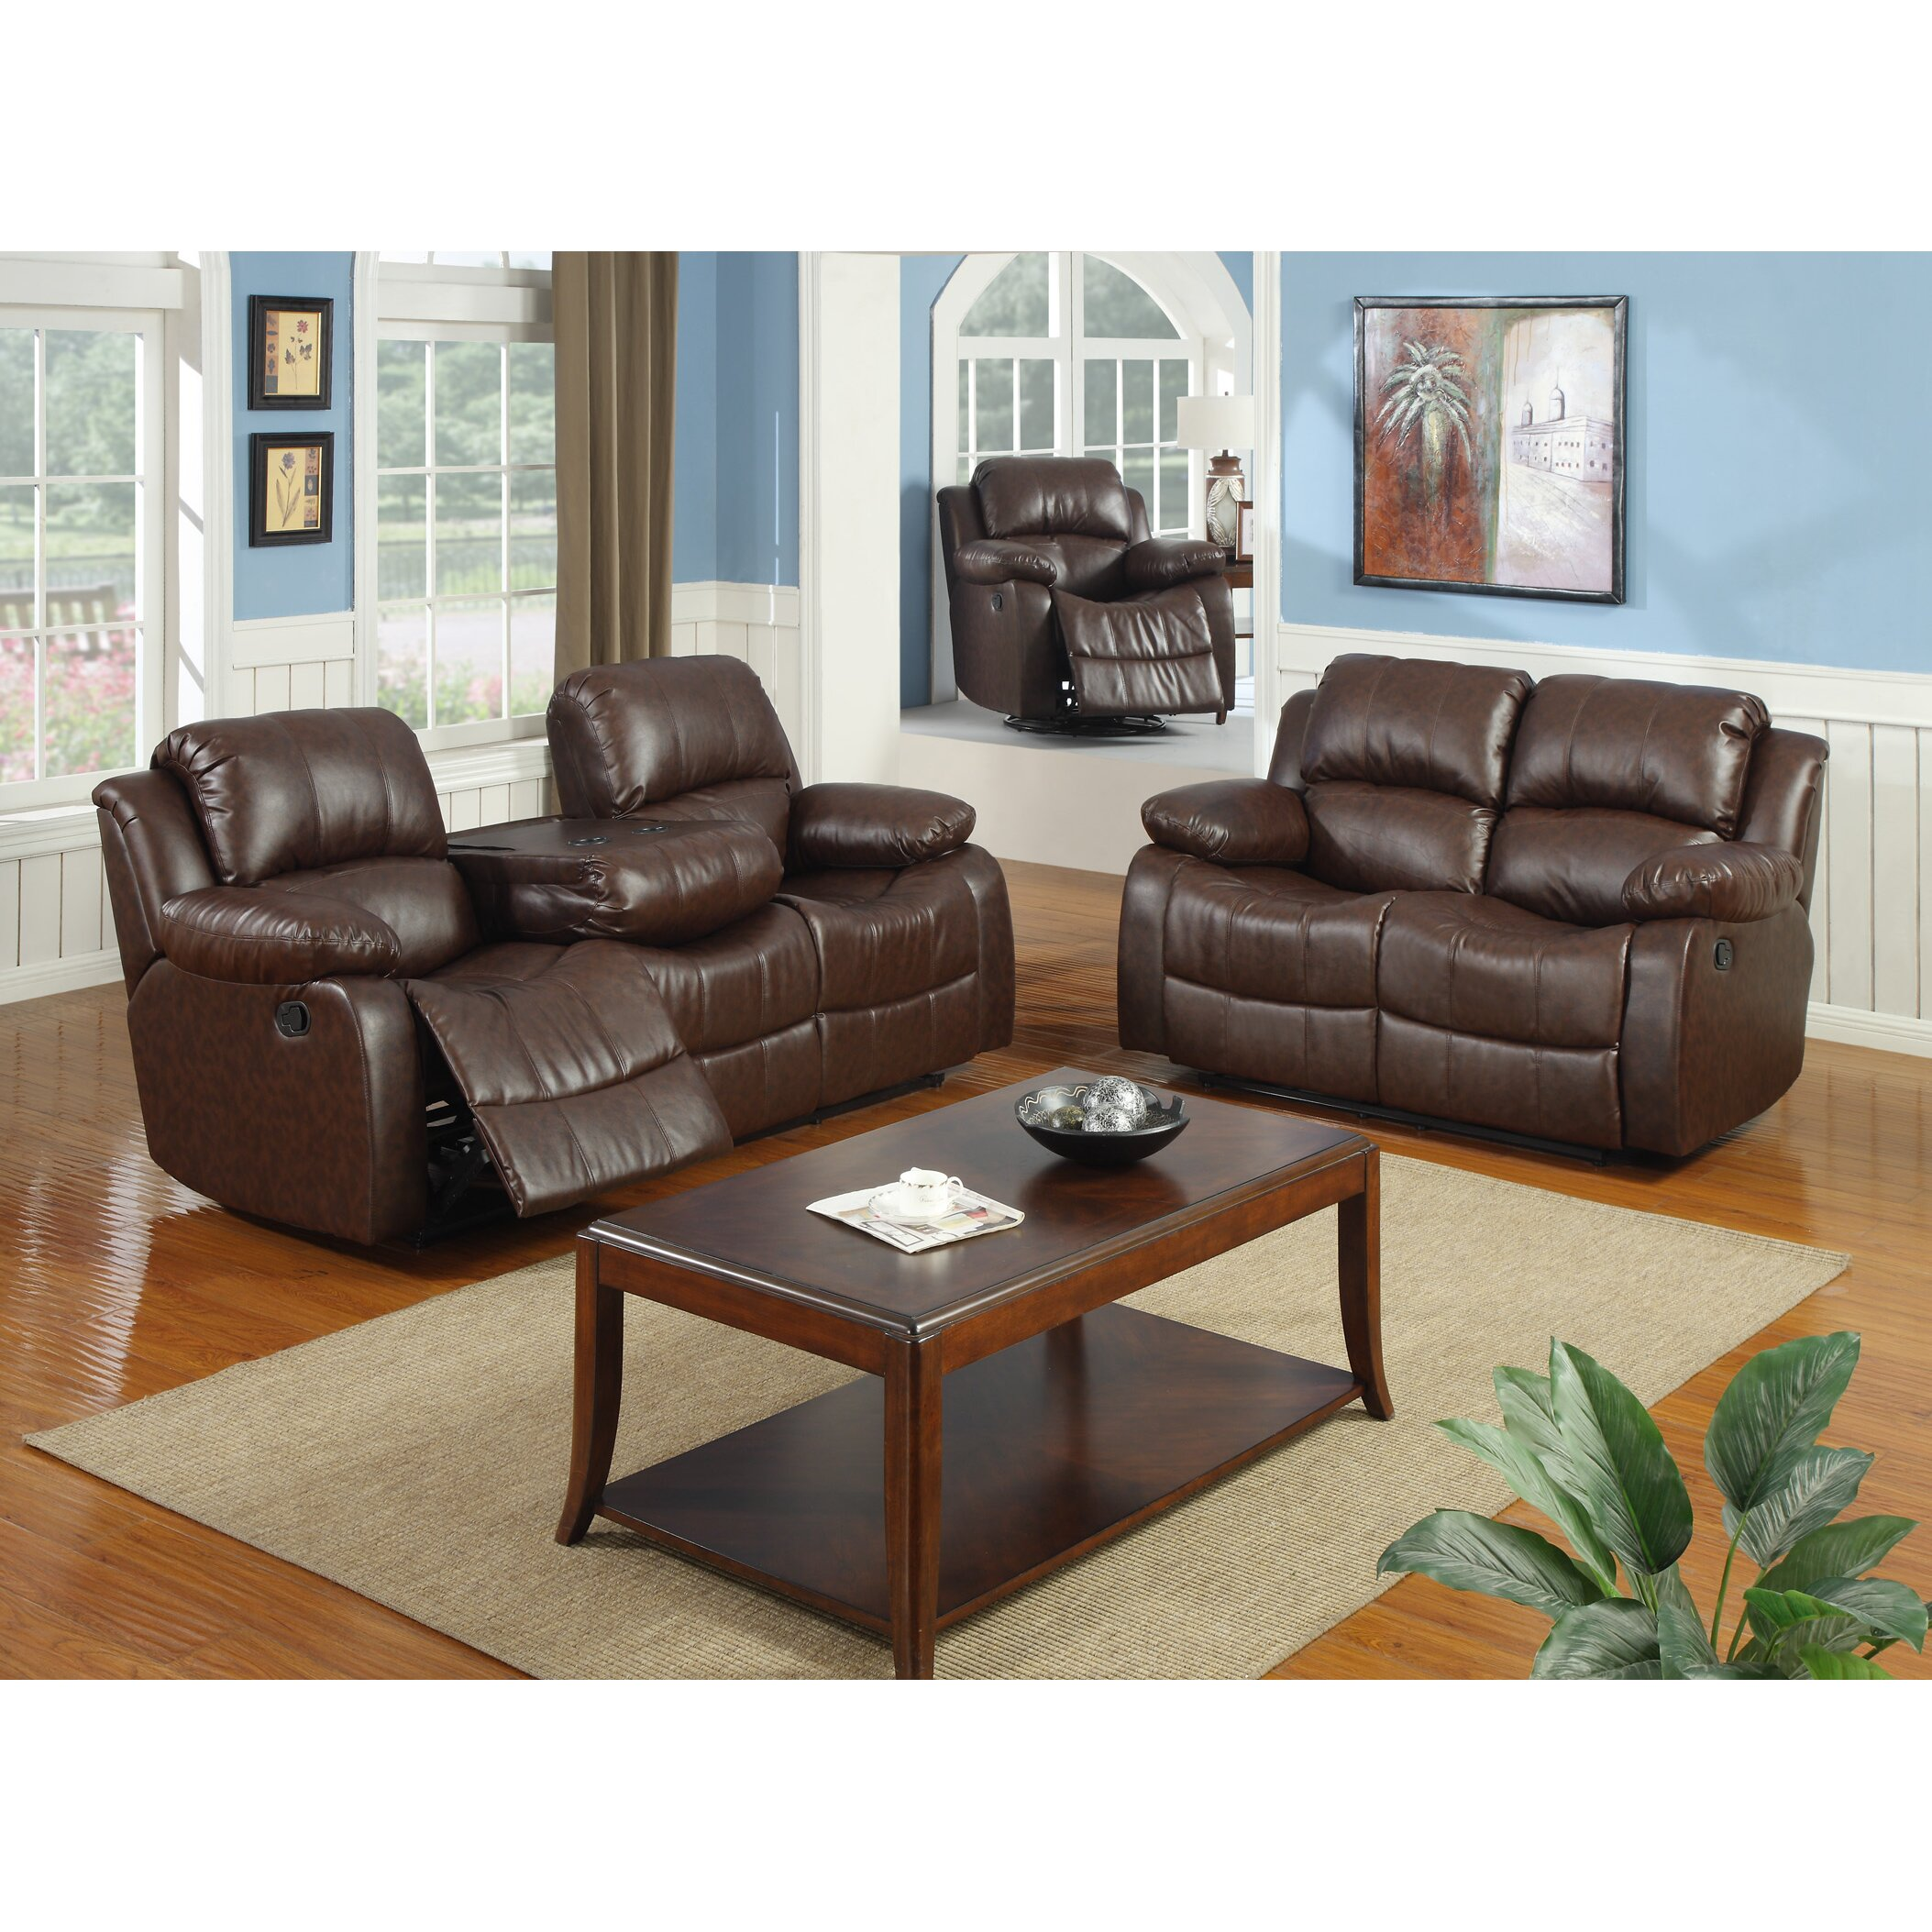 Best quality furniture bonded leather 3 piece recliner Reclining living room furniture